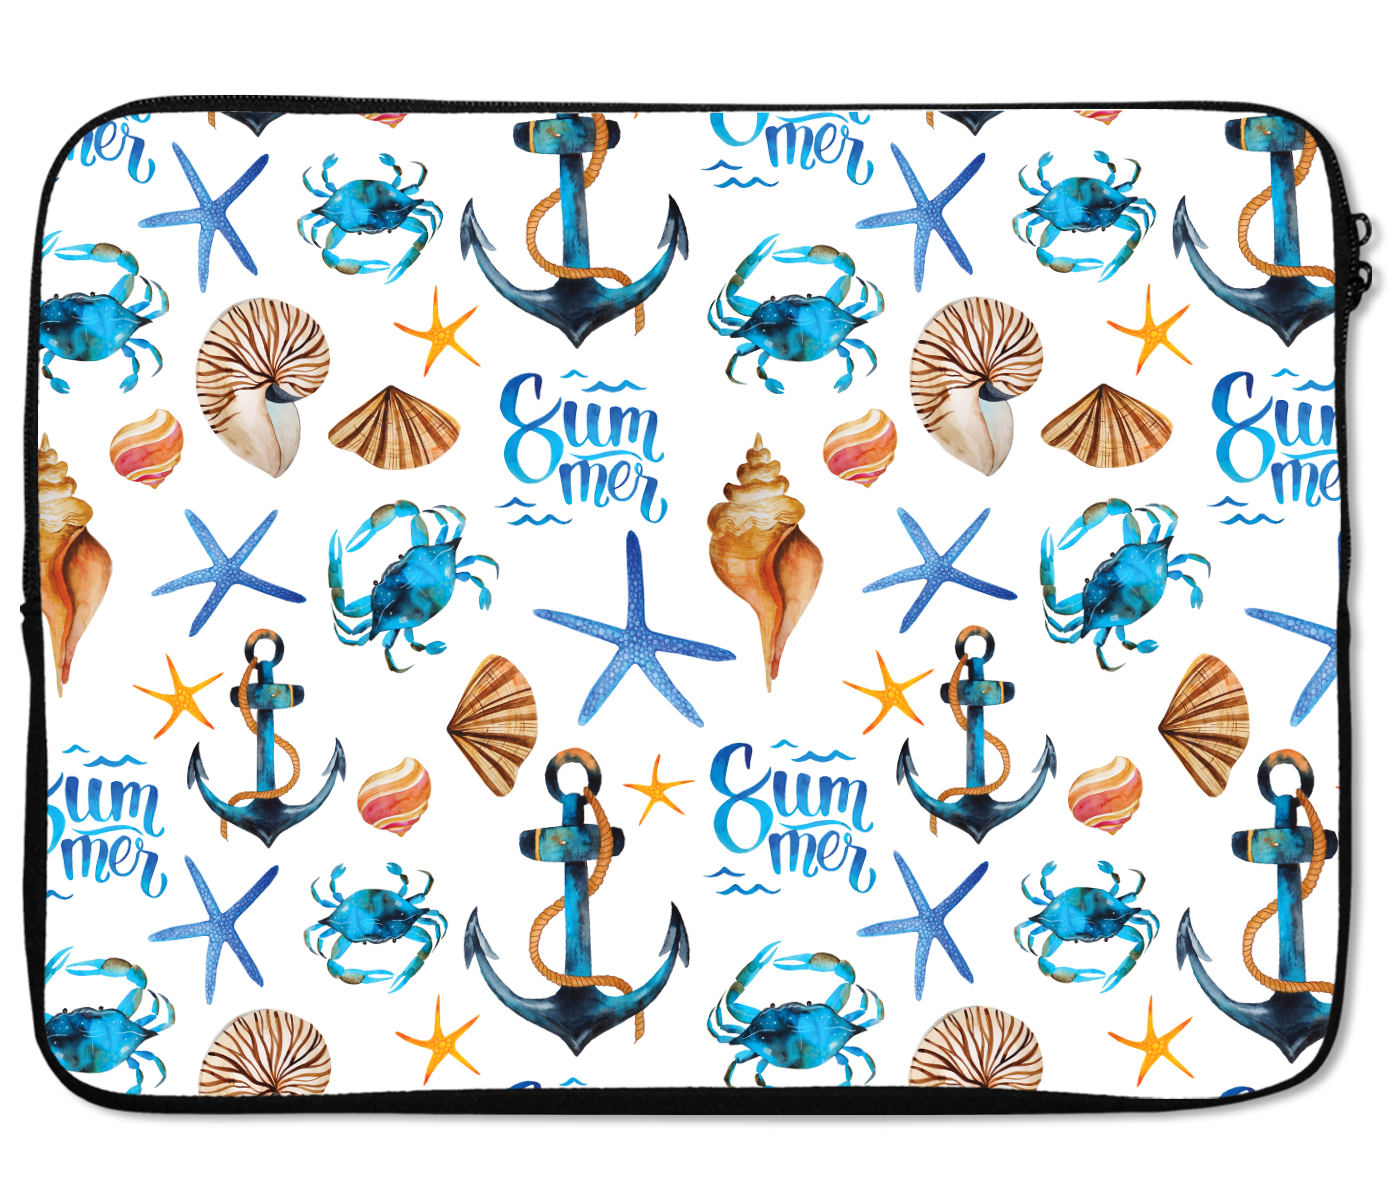 Laptops Tablet Sleeves Sea Life Star Fish Ship Anchor Nautical Beach Summer Pattern Premium Quality Neoprene Laptop Protection